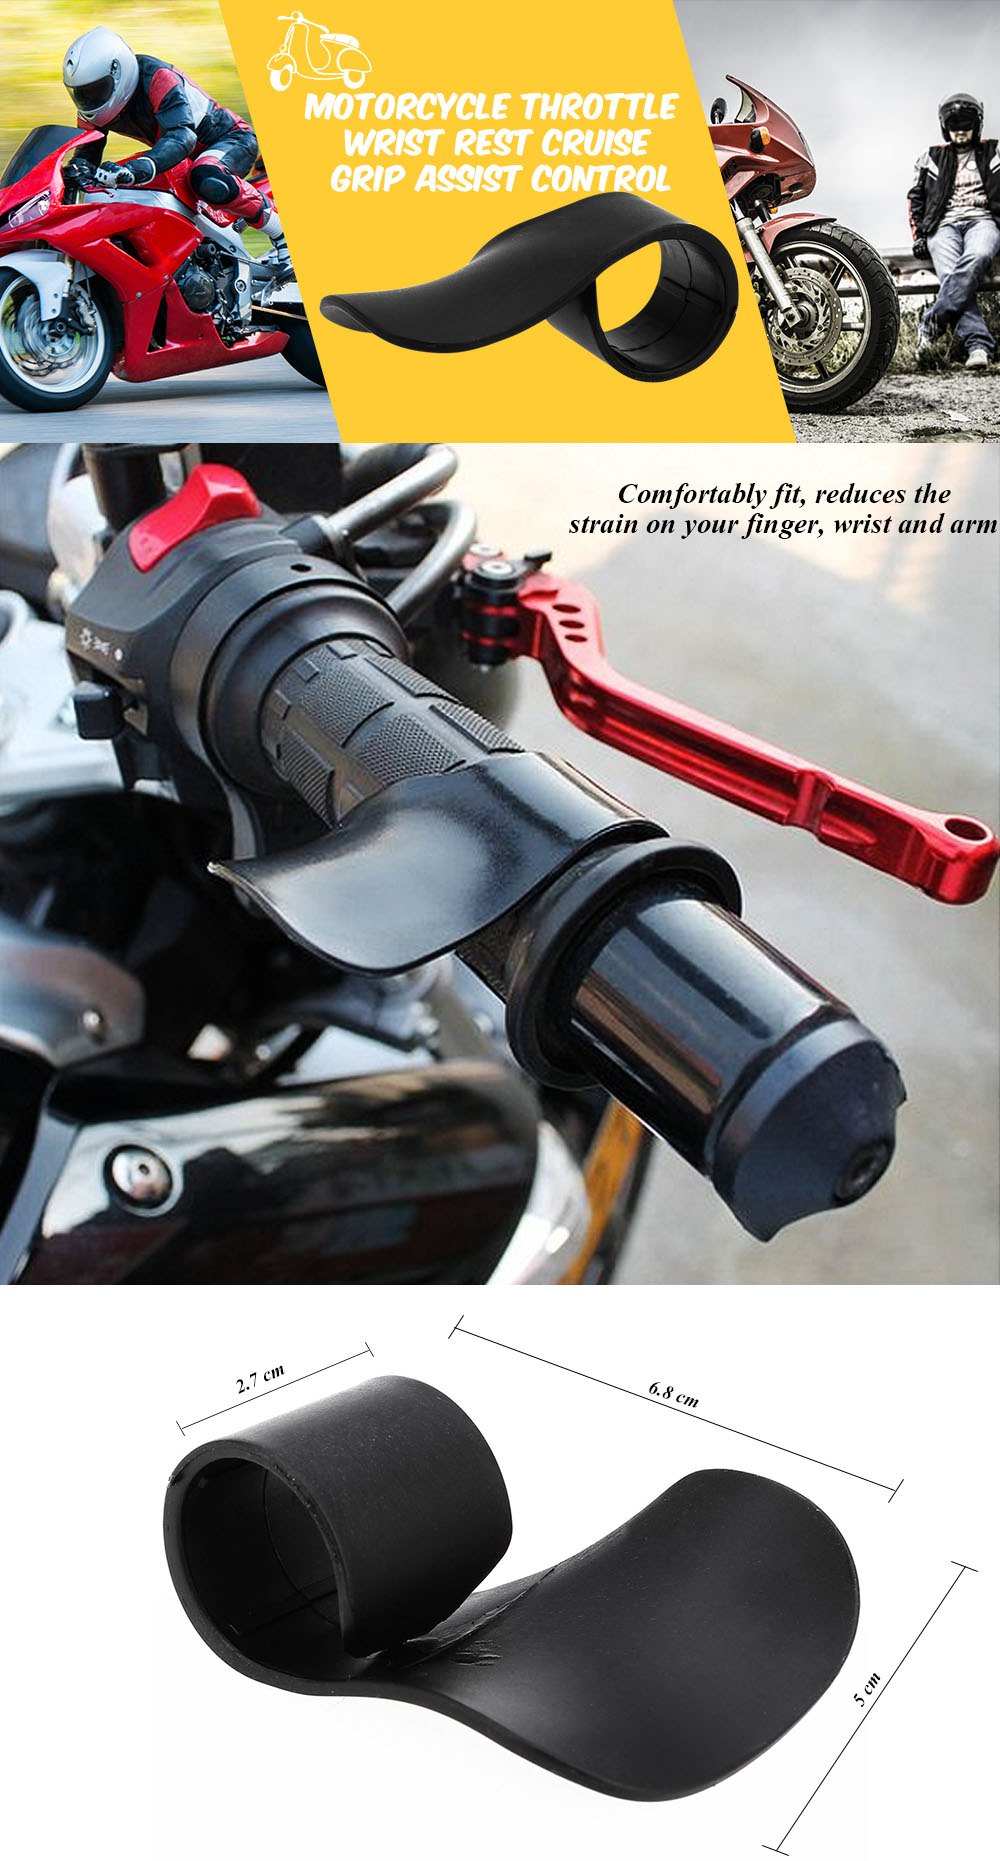 Universal Motorcycle Throttle Booster Wrist Rest Cruise Grip Assist Control